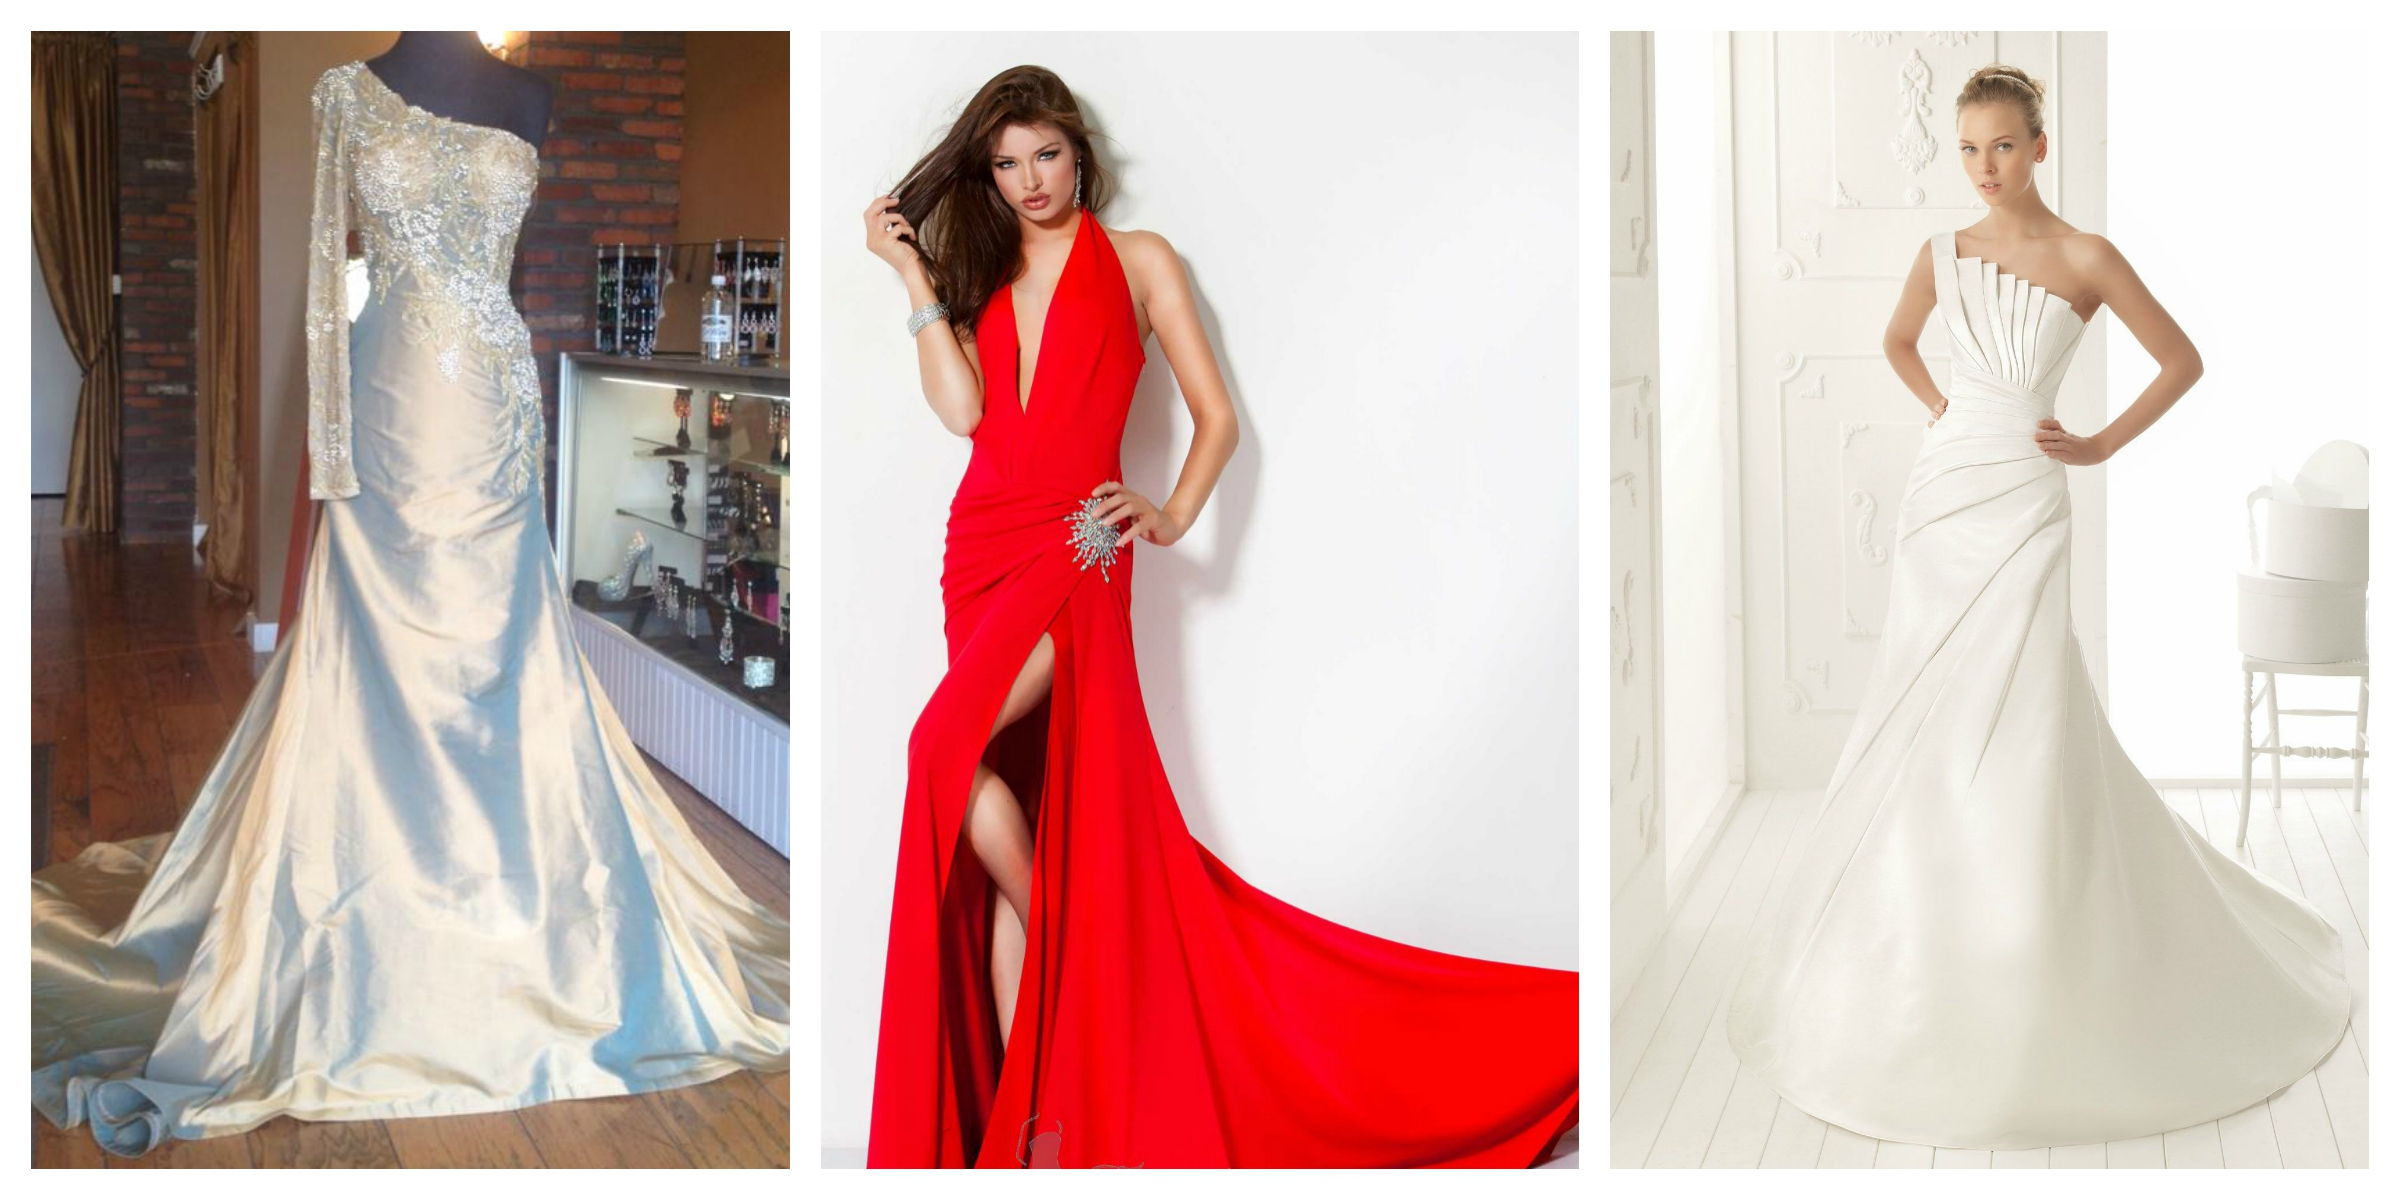 This is a tiny example of the gown pictures I have saved on my computer. It's seriously out of control!